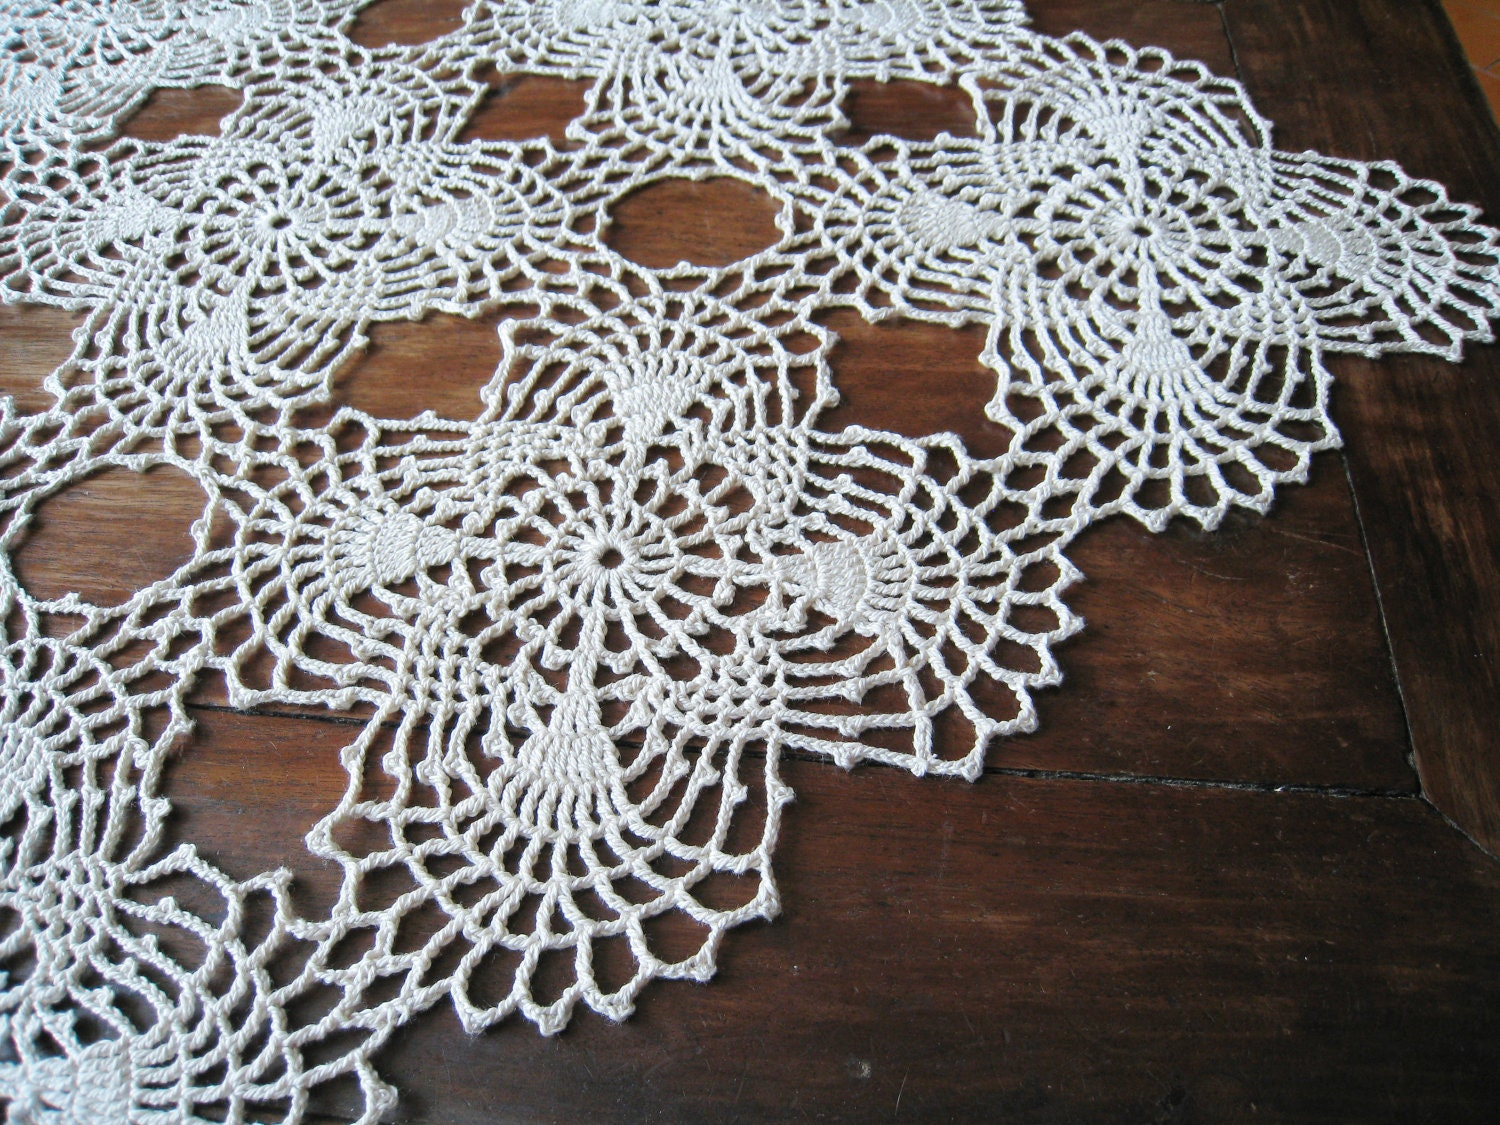 Crochet Patterns Lace Table Runners : Crochet Lace Table Runner Natural Shabby Chic Cottage Table